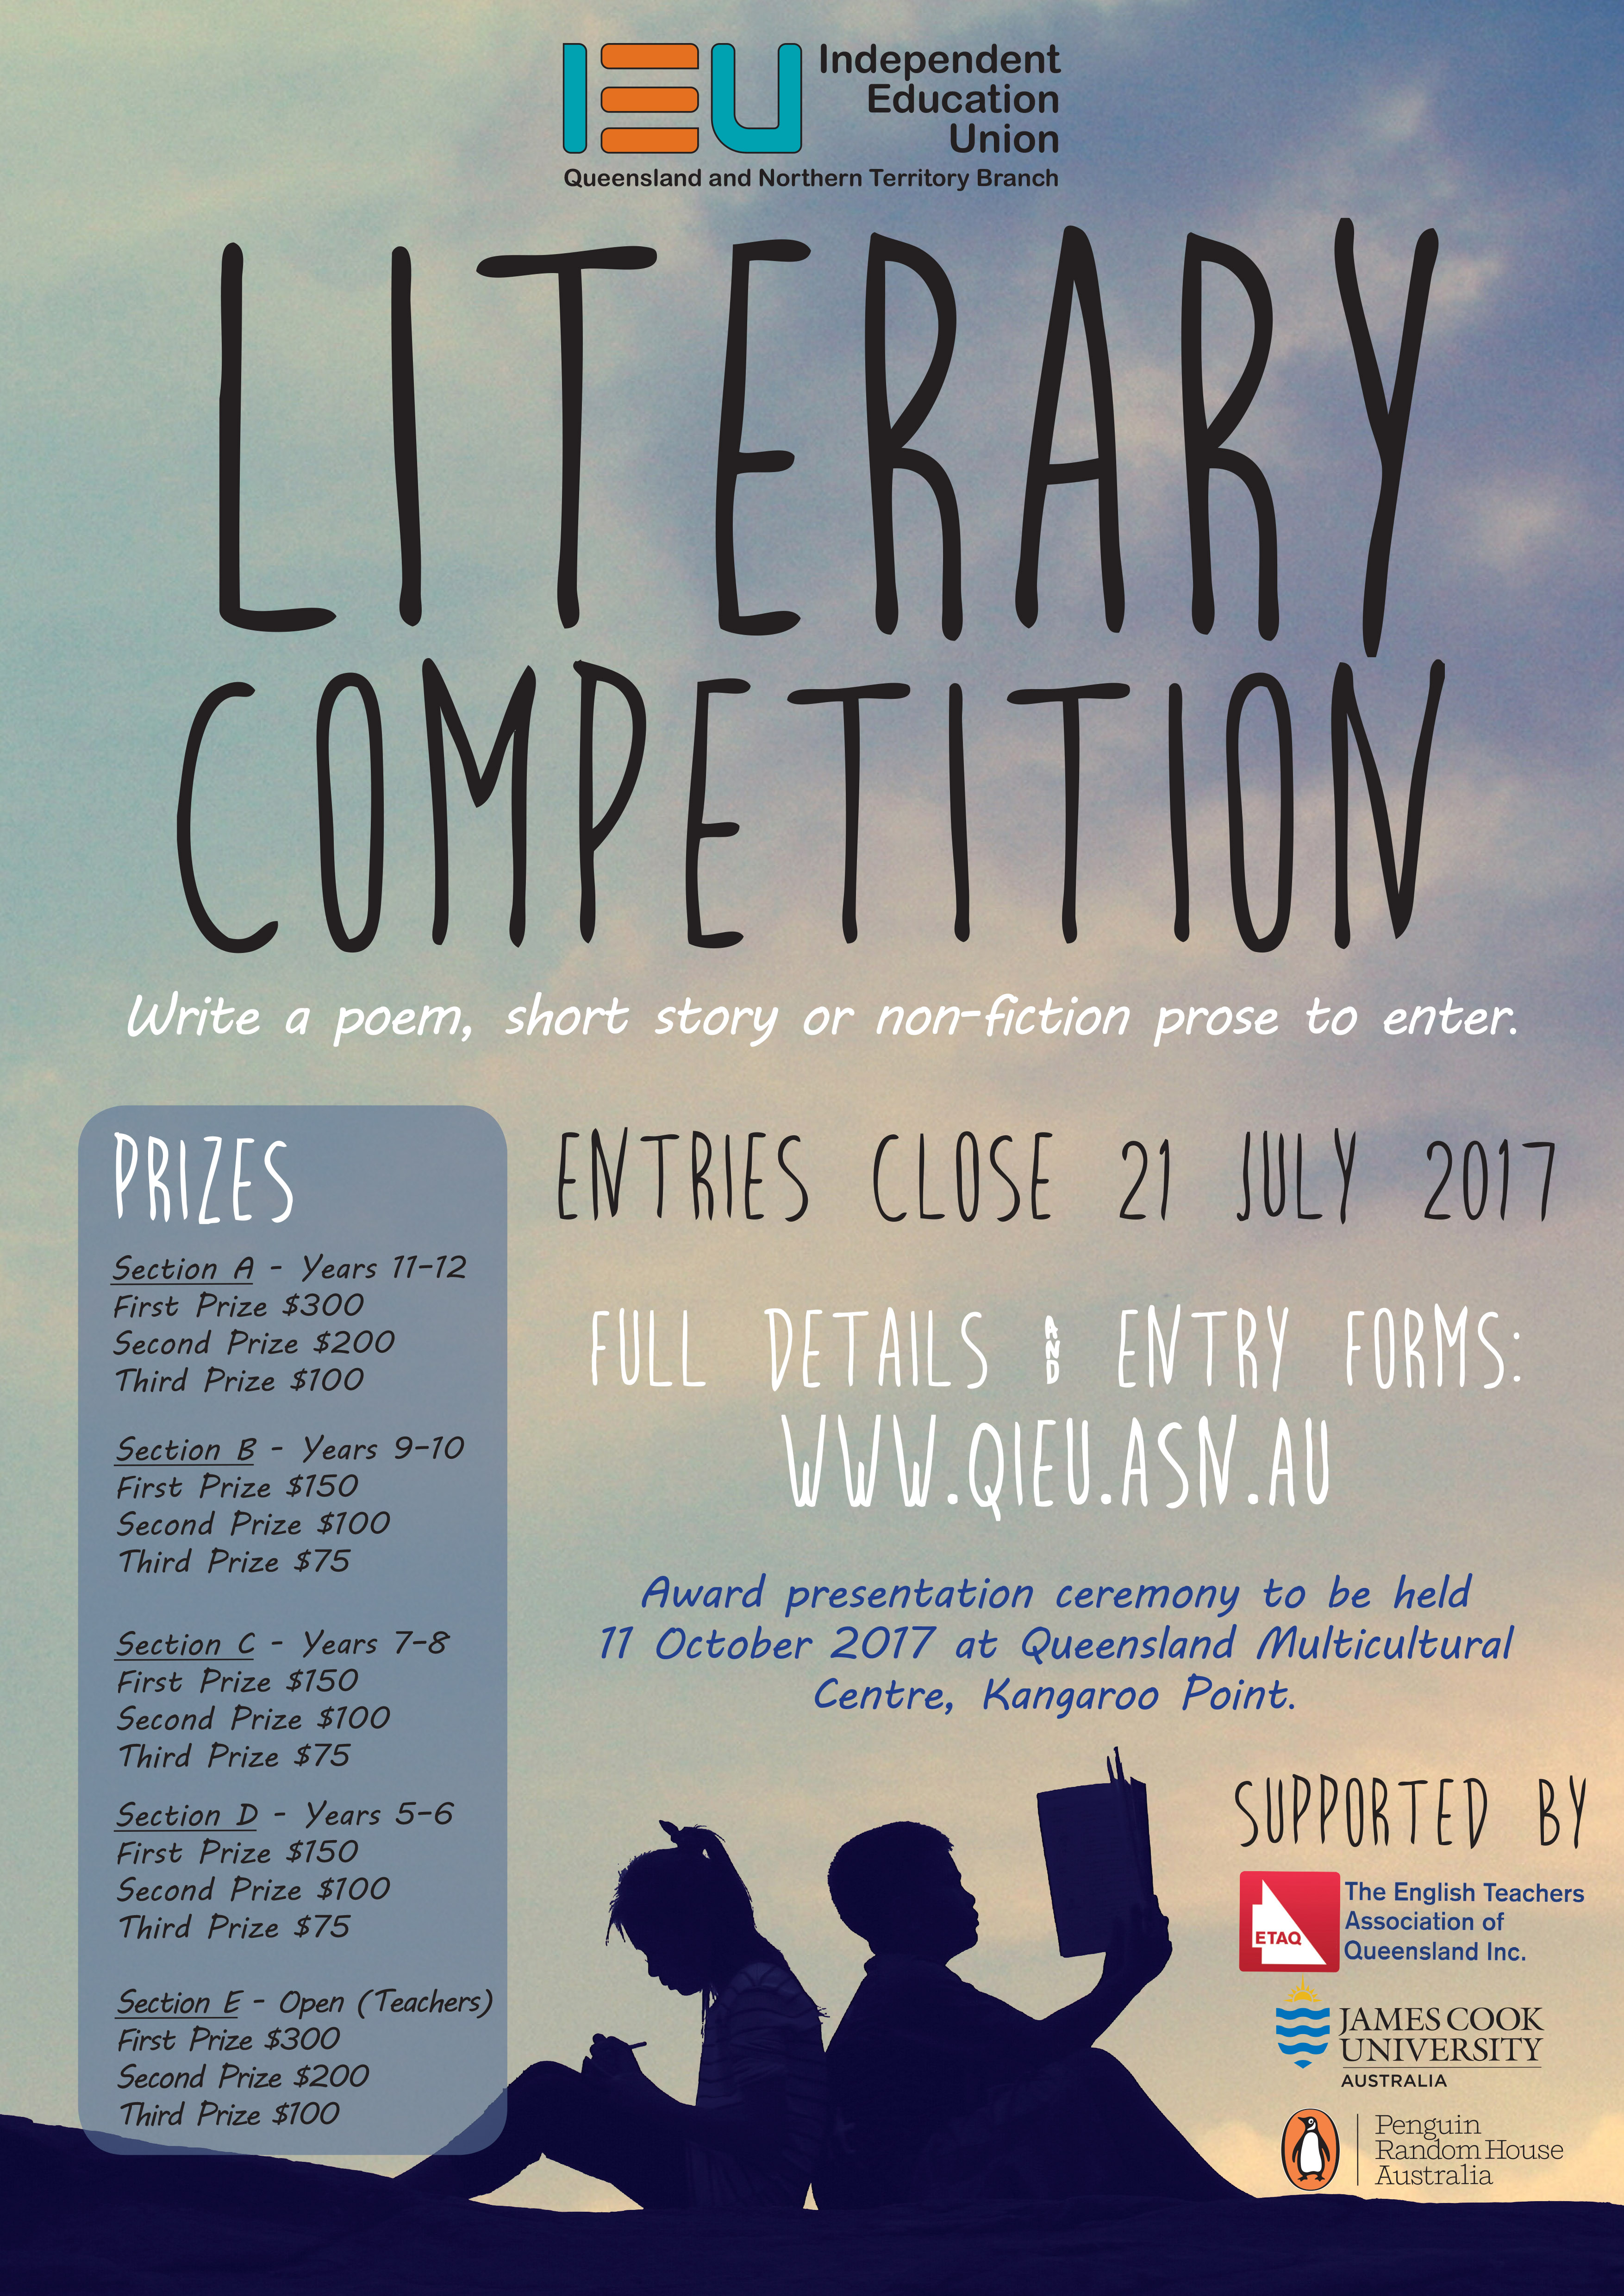 Literary-Competition-A3-Poster-2017.jpg?